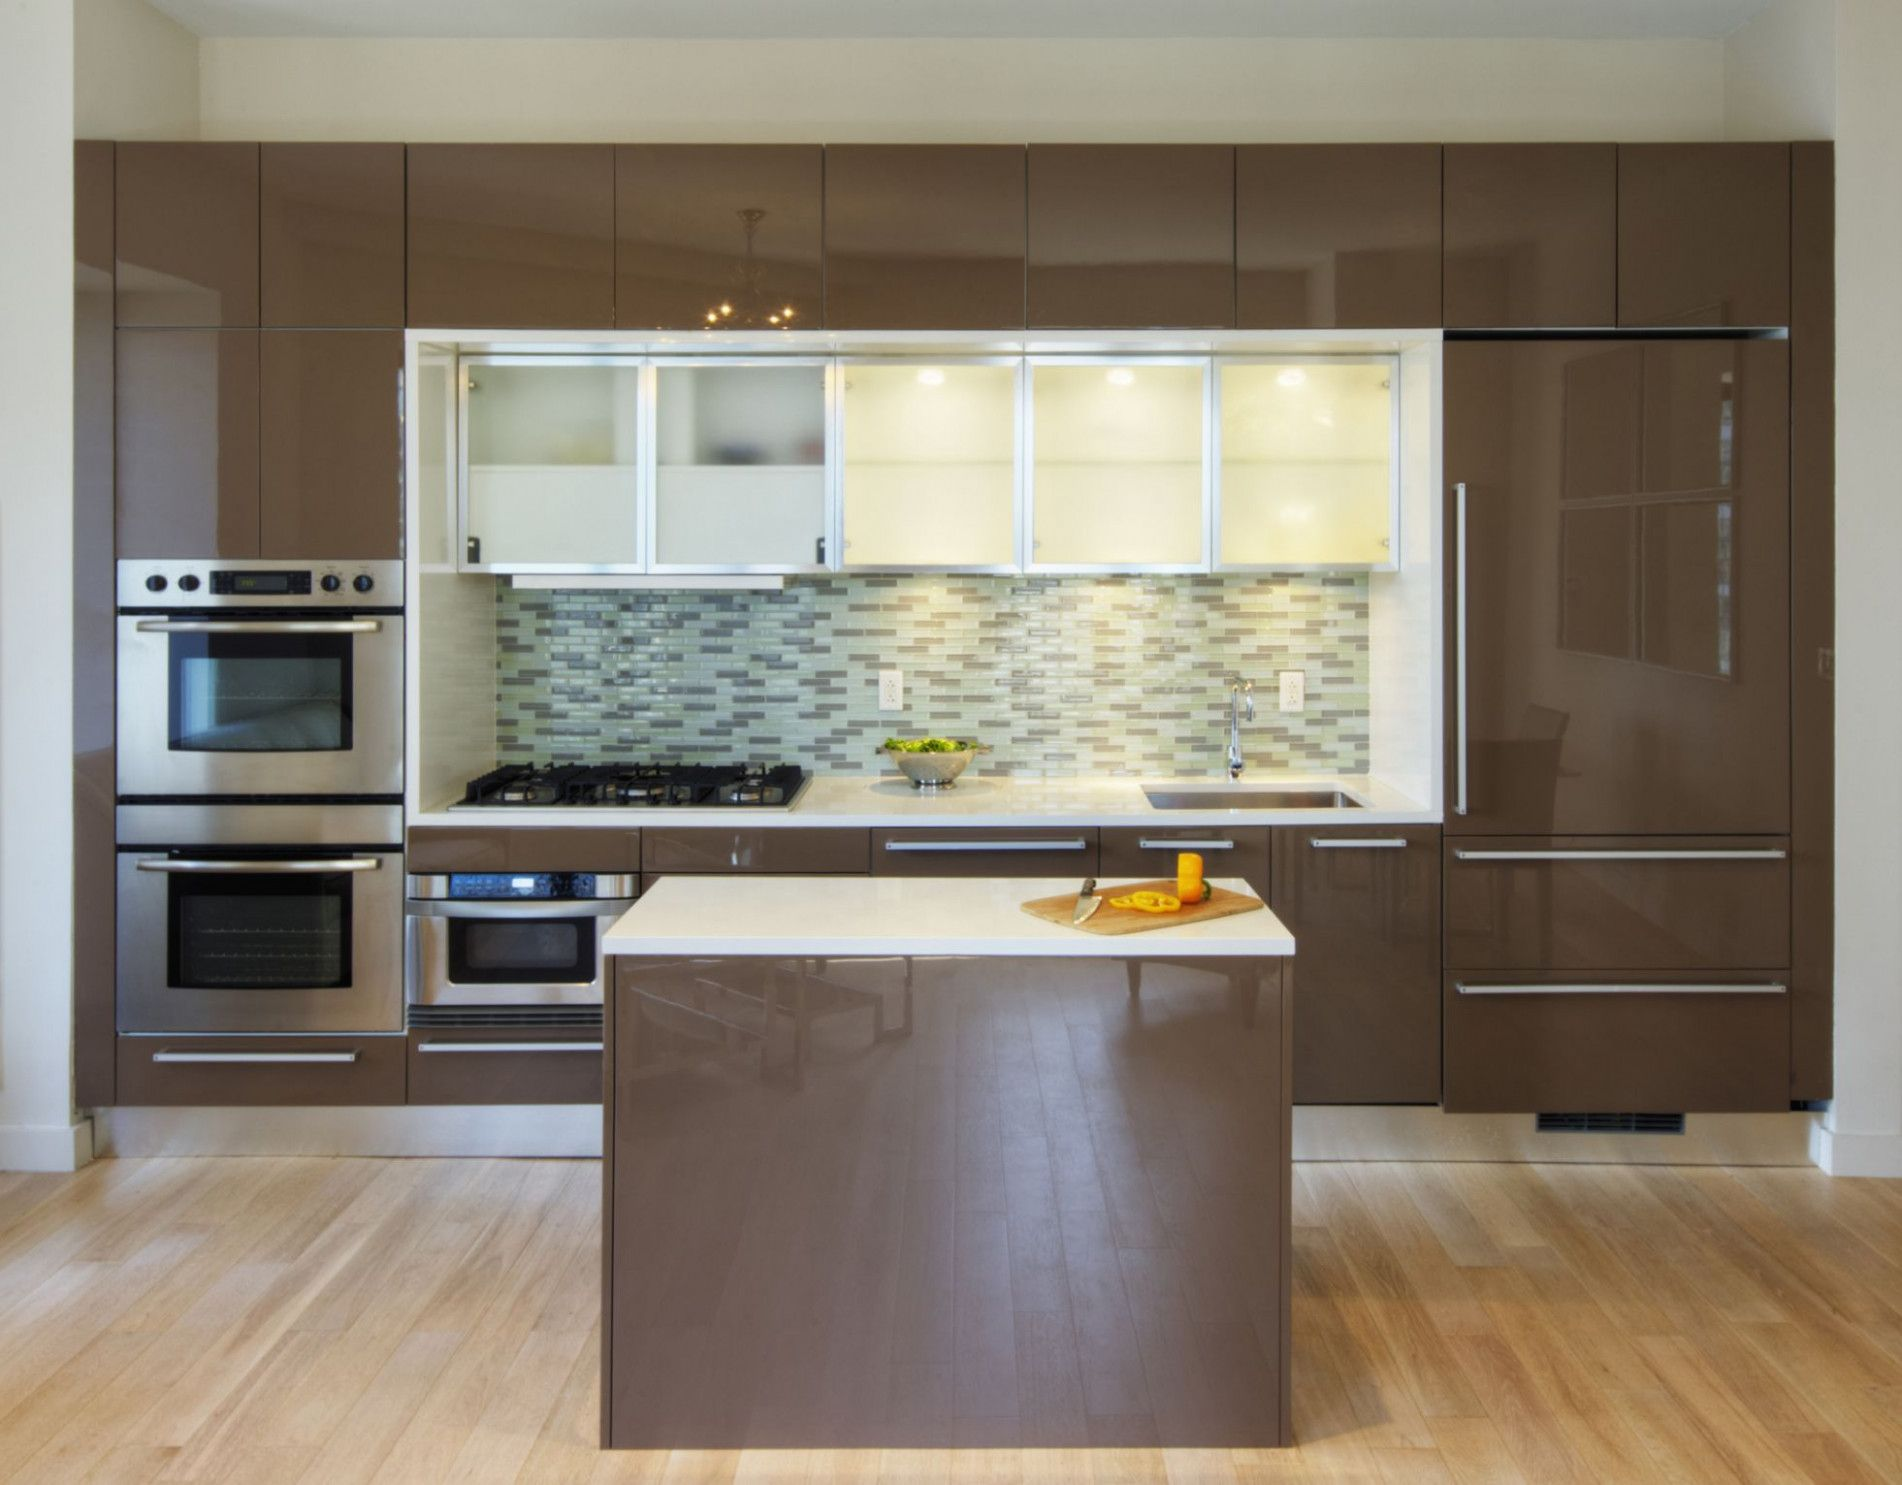 9 Where To Buy Inexpensive Kitchen Cabinets In 2020 Kitchen Cabinets Brands Best Kitchen Cabinets Cost Of Kitchen Cabinets